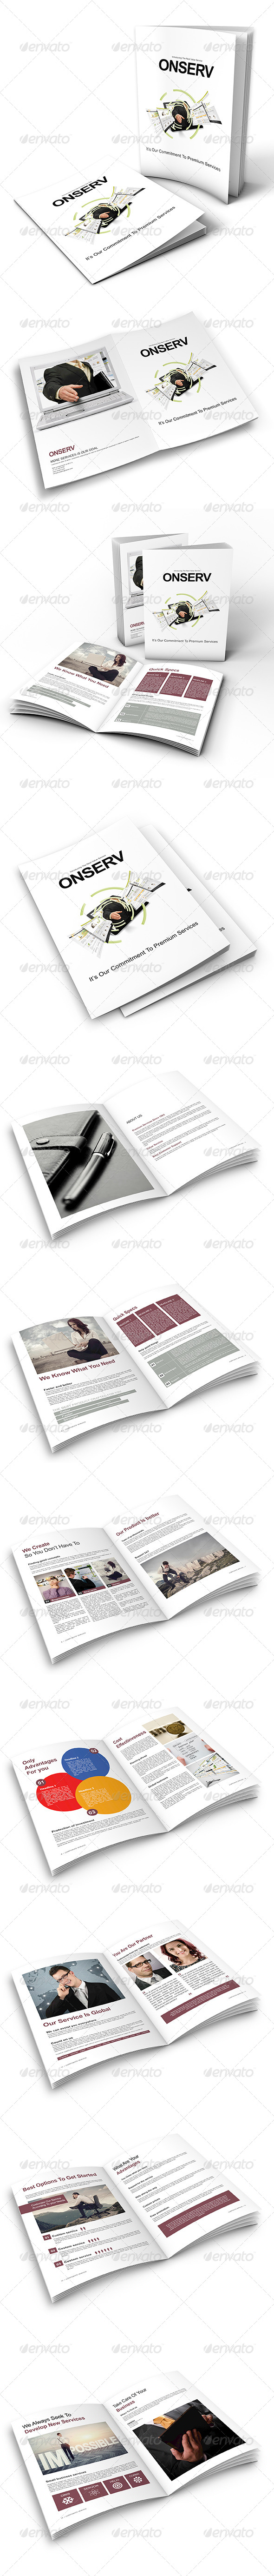 GraphicRiver Modern Corporate Service Brochure 6704568